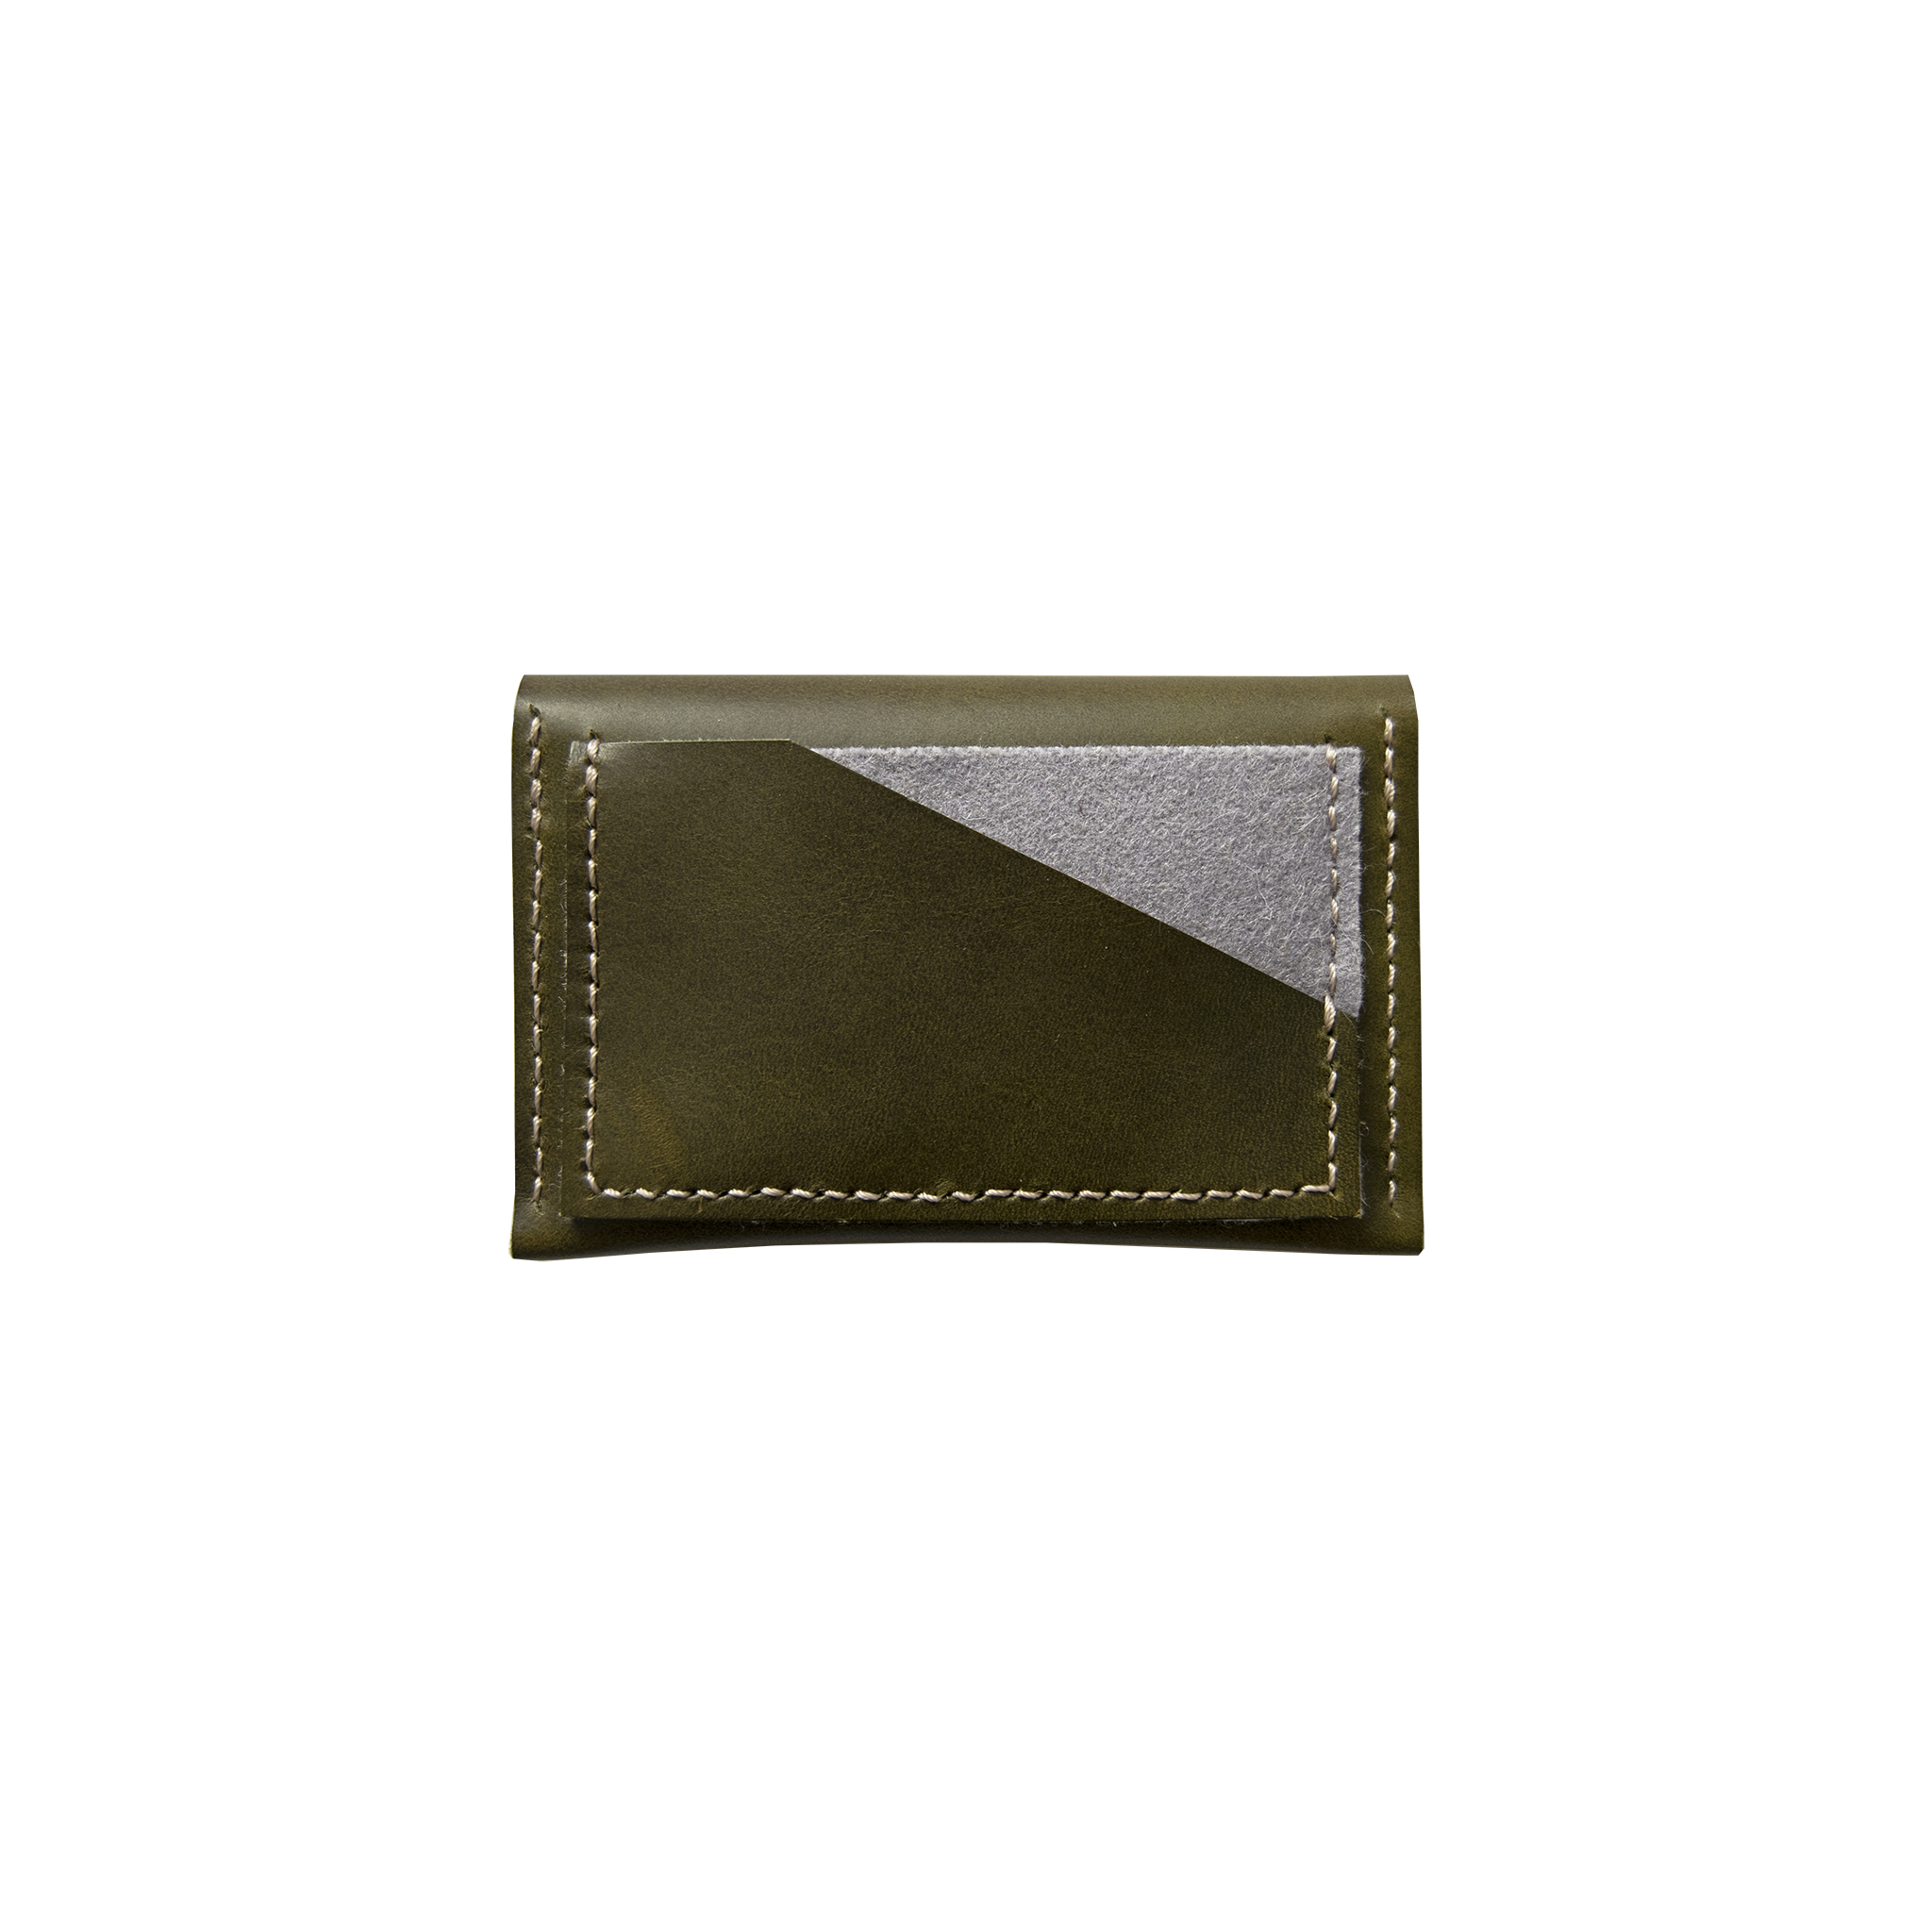 Geometric Leather Card Holder in Olive Green